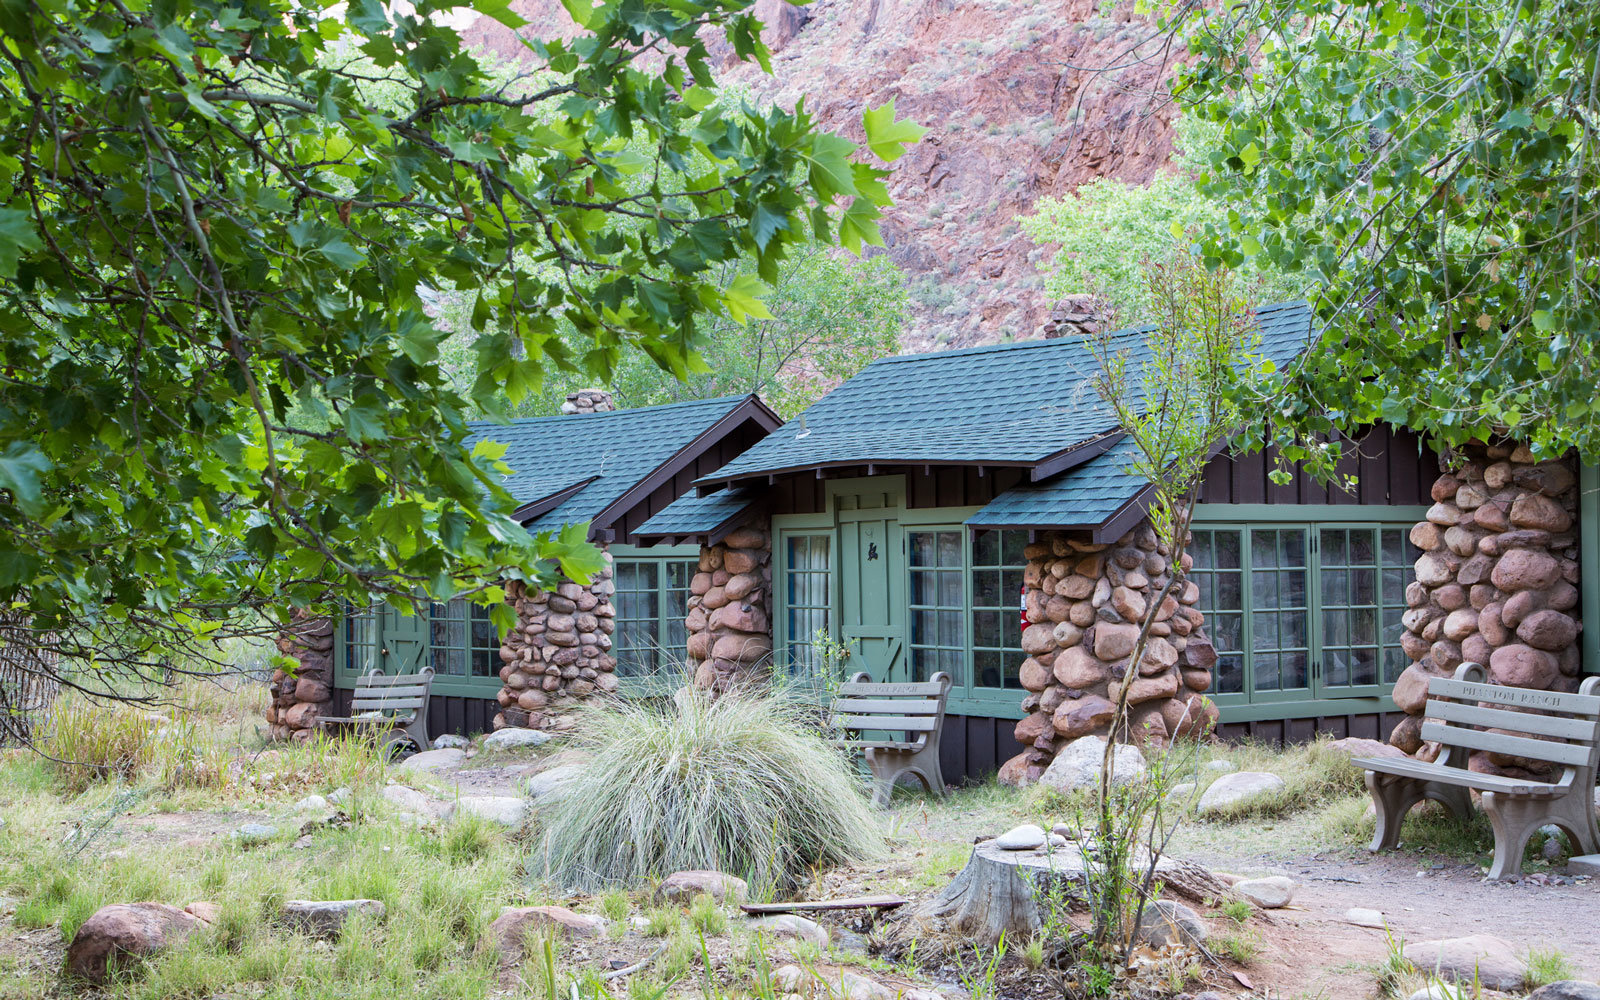 Stay in the Grand Canyon National Park at the Phantom Ranch.